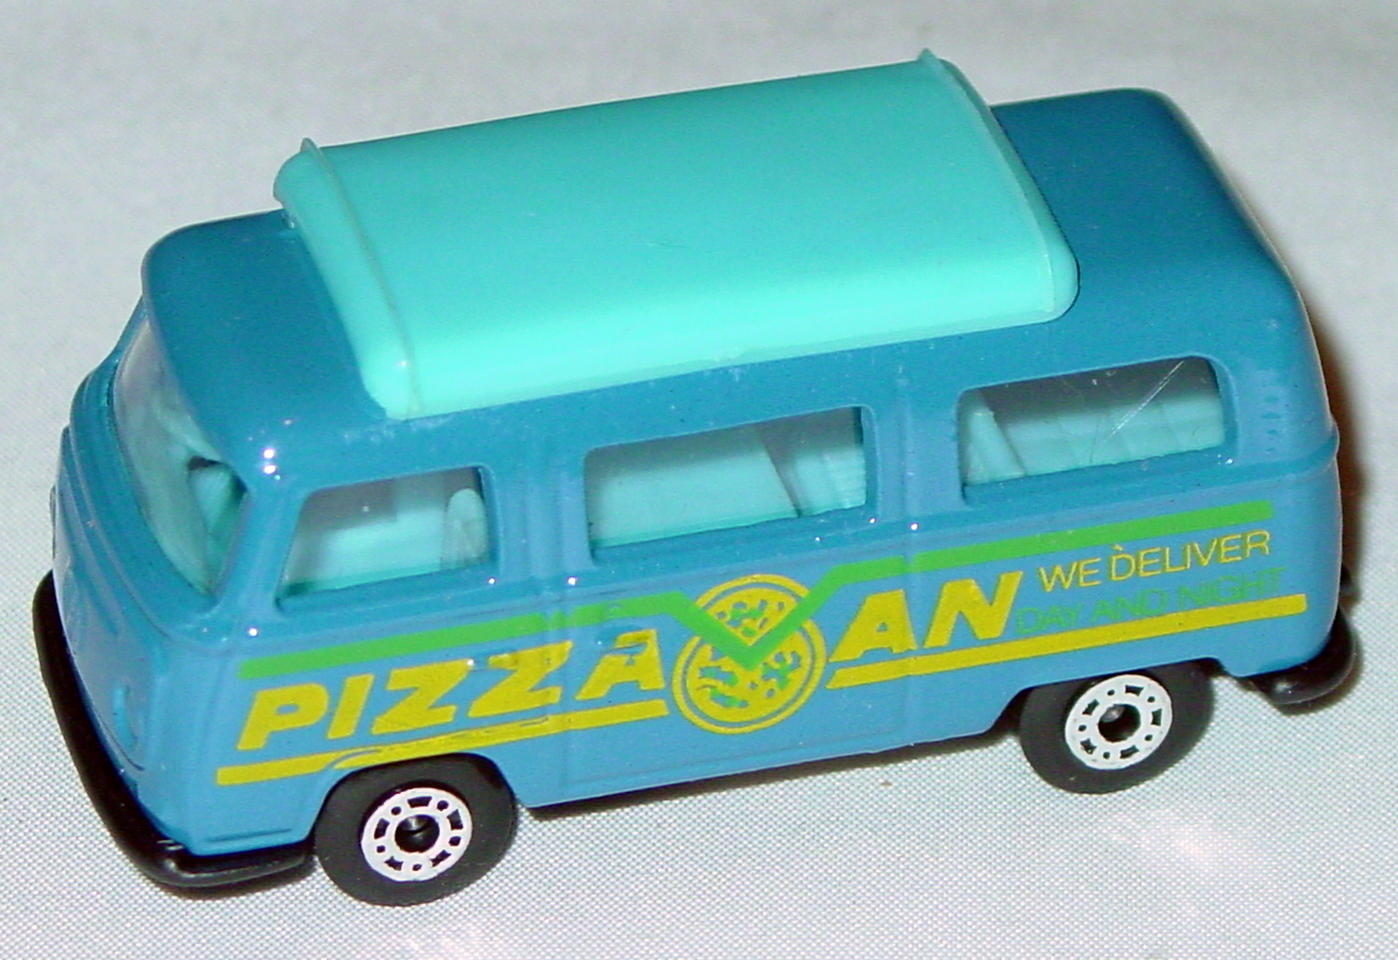 Hungarian 23 A 1 - Pizza Van Blue blue top blue interior black yellow and green tampo